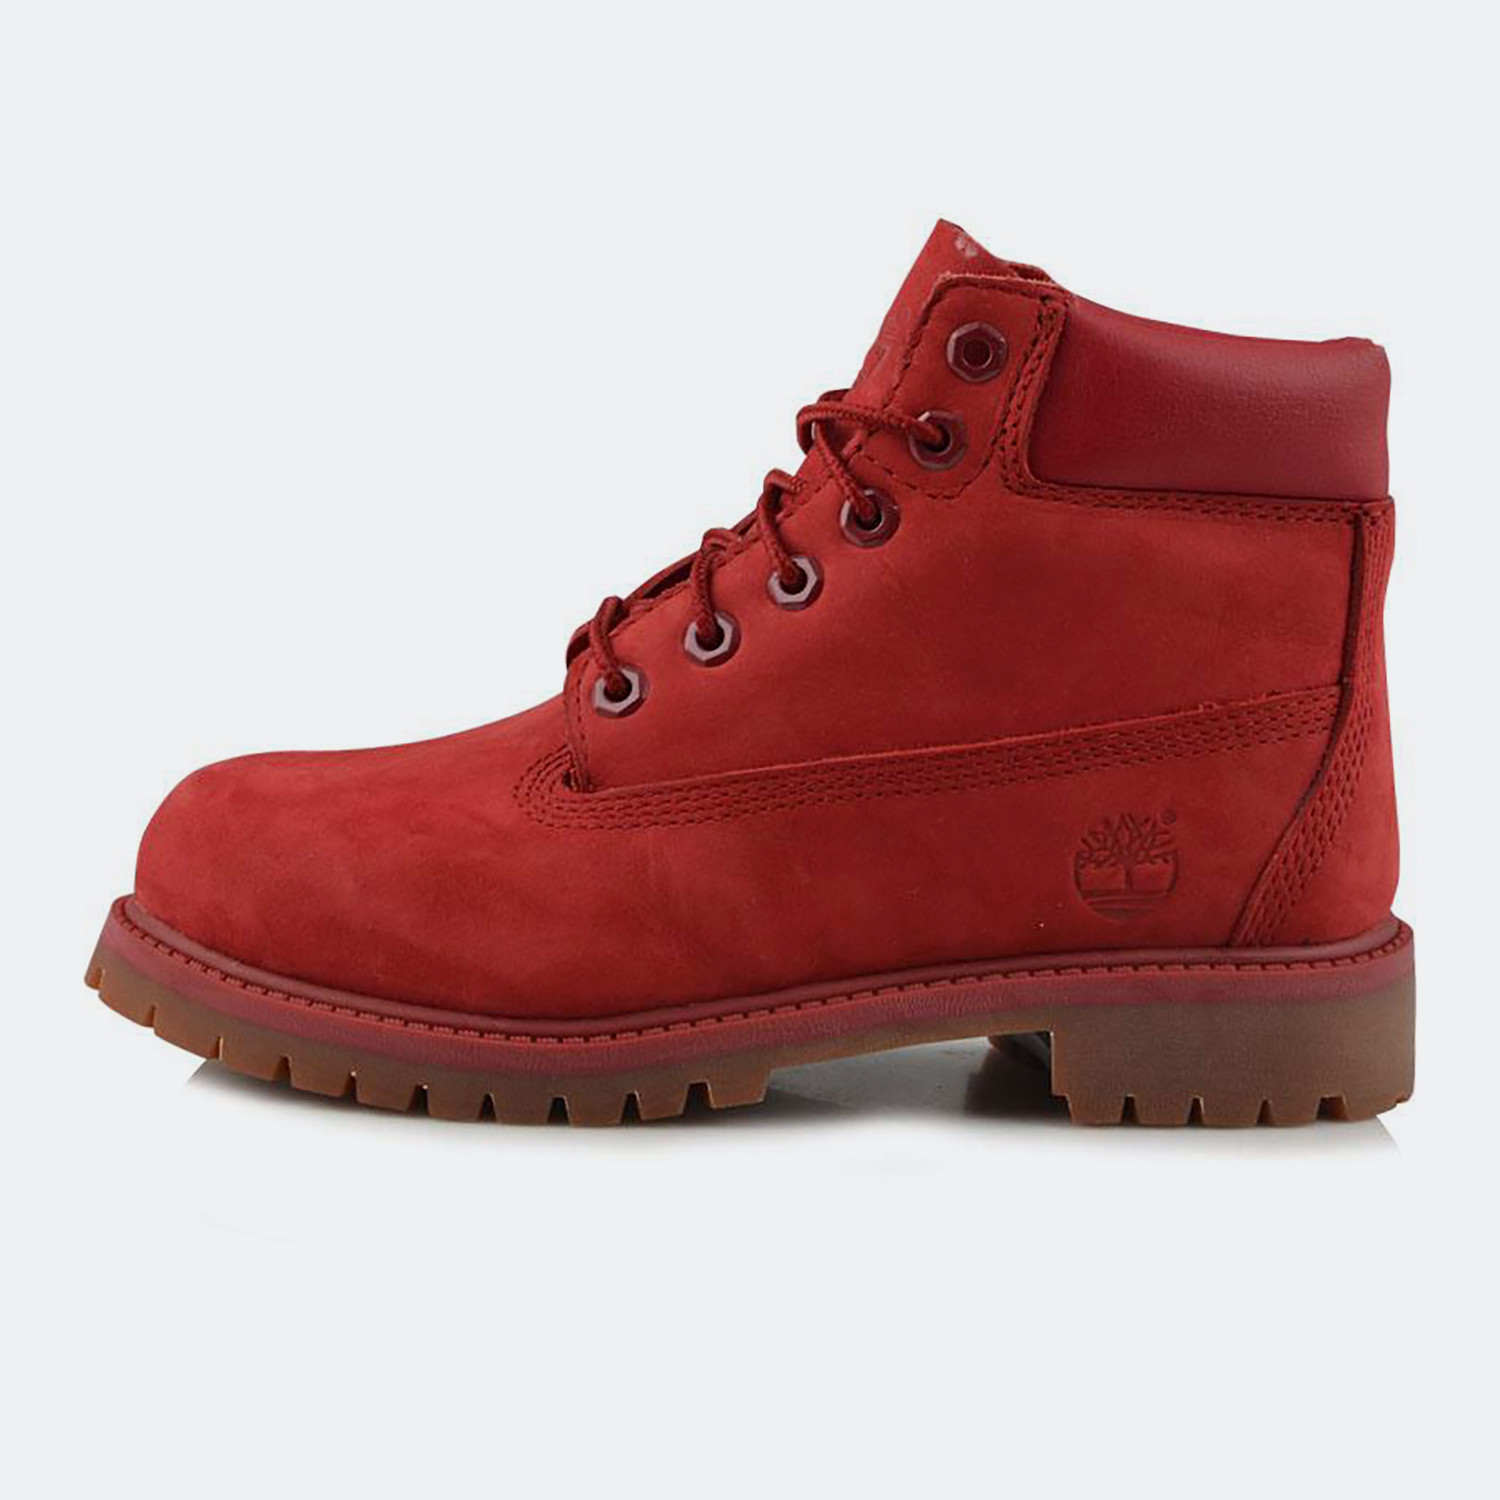 Timberland 6 In Premium Wp Boot Red (1080031571_1634)